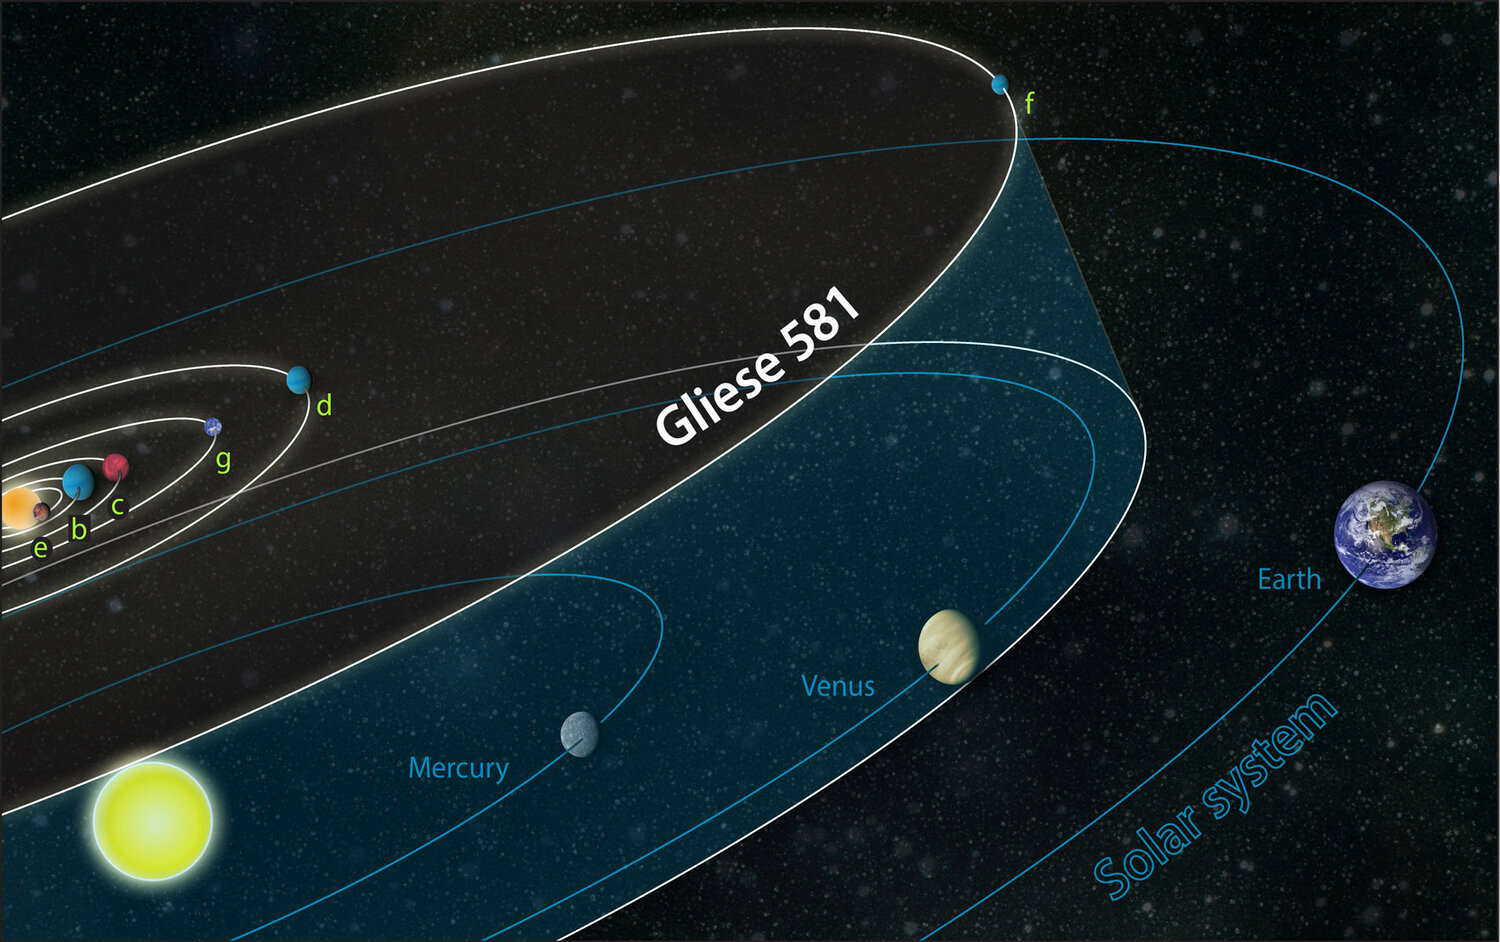 Gliese 581 system compared to solar system  Zina Deretsky, National Science Foundation [Public domain]